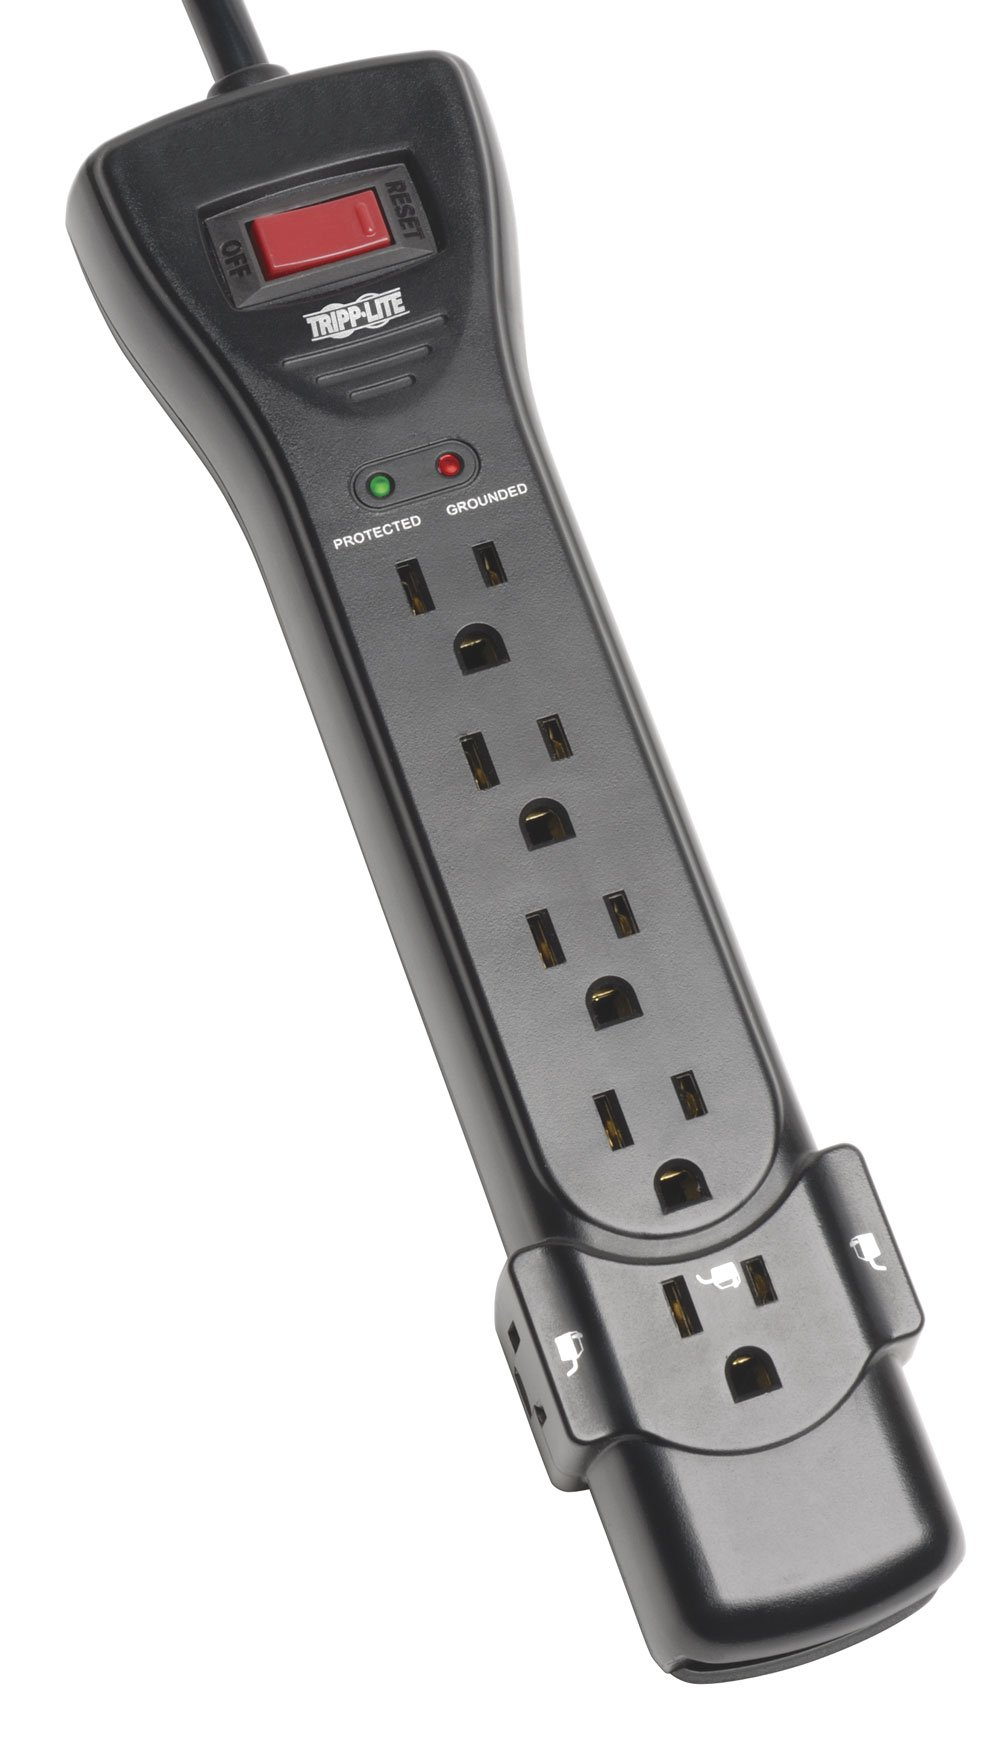 Tripp Lite 7 Outlet Surge Protector Power Strip, 7ft Cord, Right Angle Plug, 2160 Joules, Black, $75,000 INSURANCE (SUPER7B) by Tripp Lite